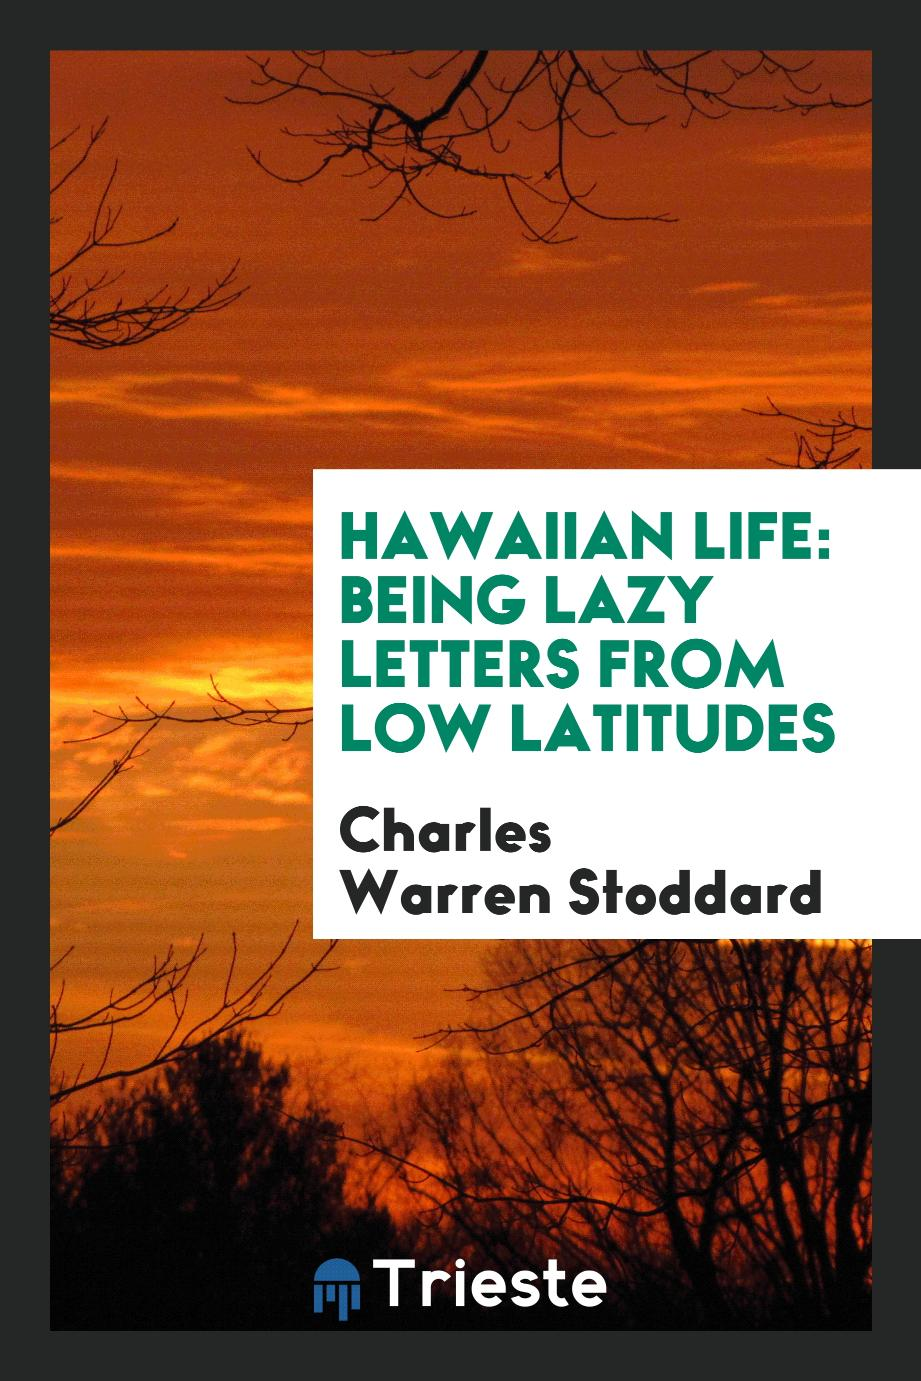 Hawaiian Life: Being Lazy Letters from Low Latitudes